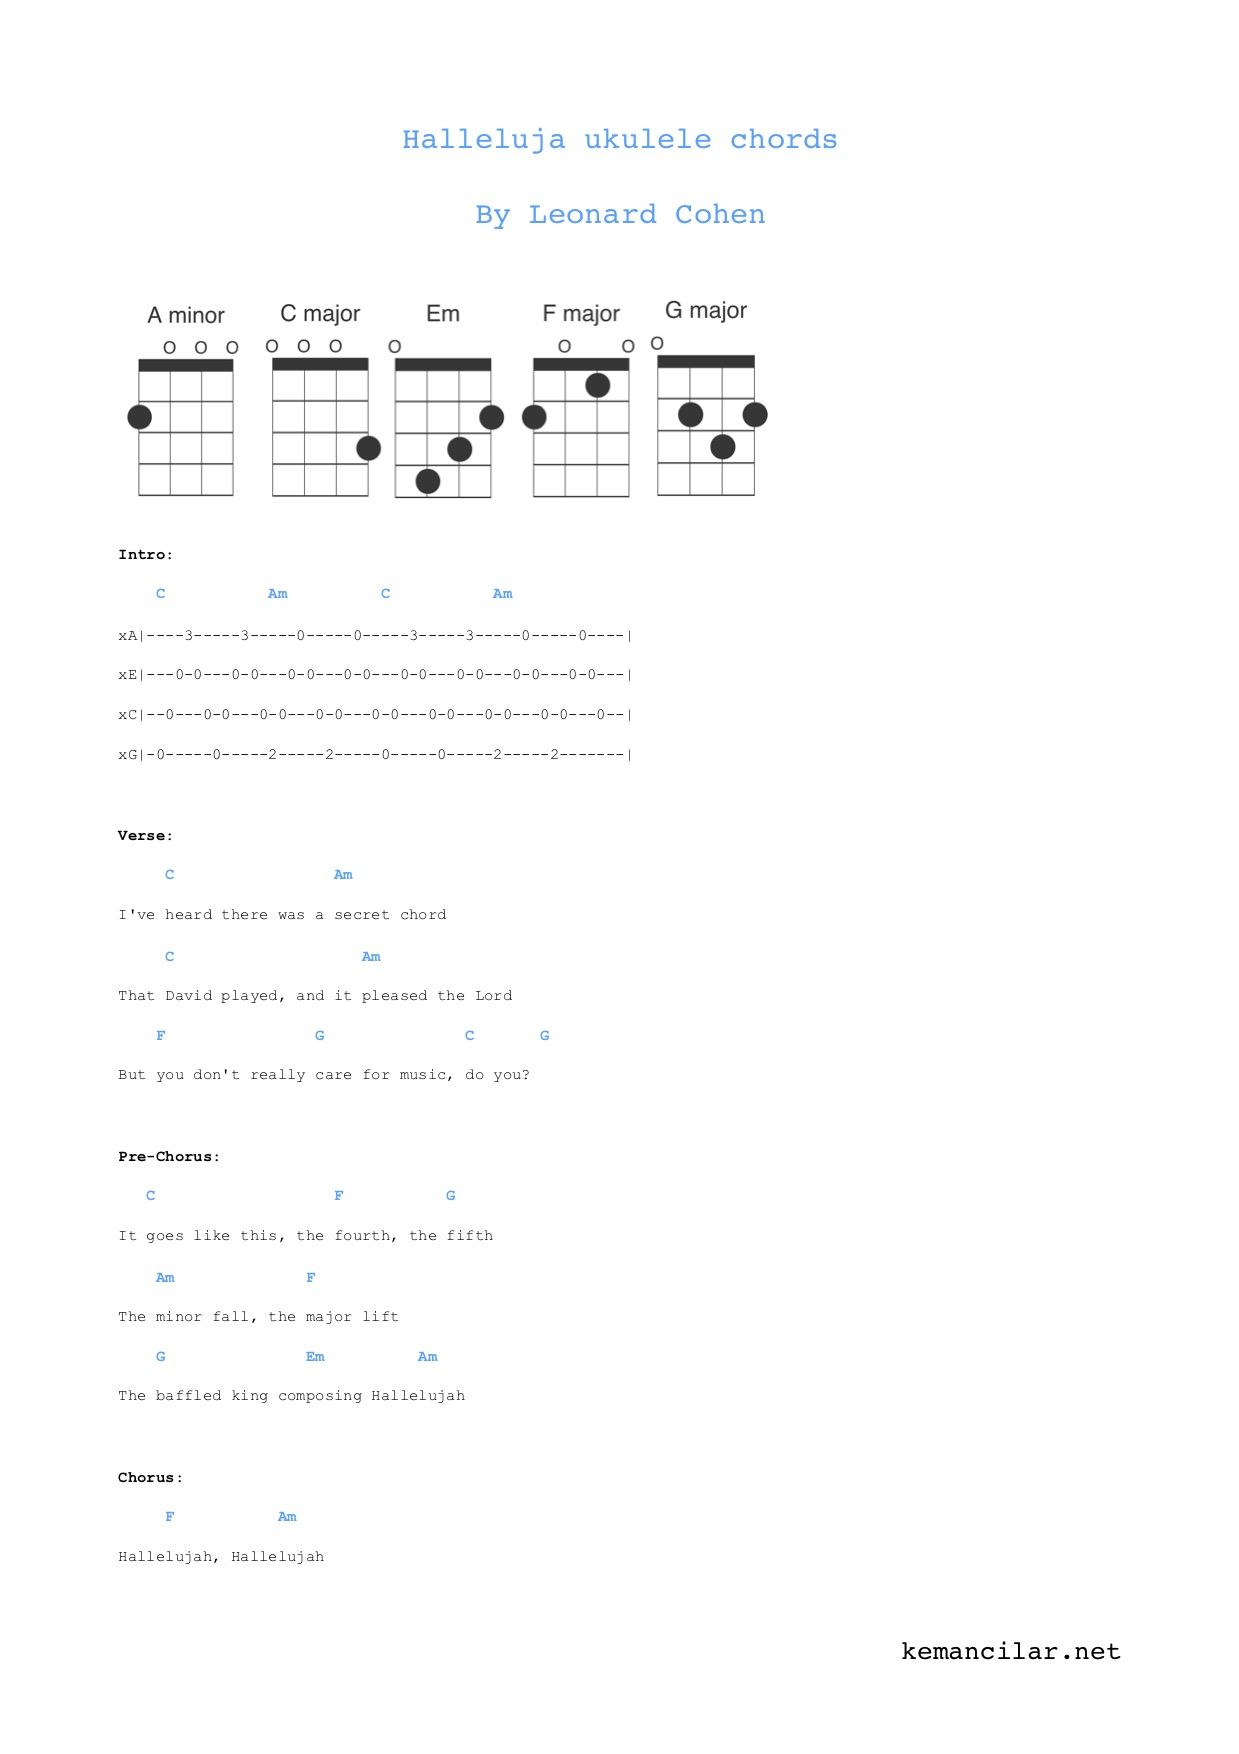 House Of Gold Ukulele Chords Halleluja Ukulele Chords Free Sheet Music